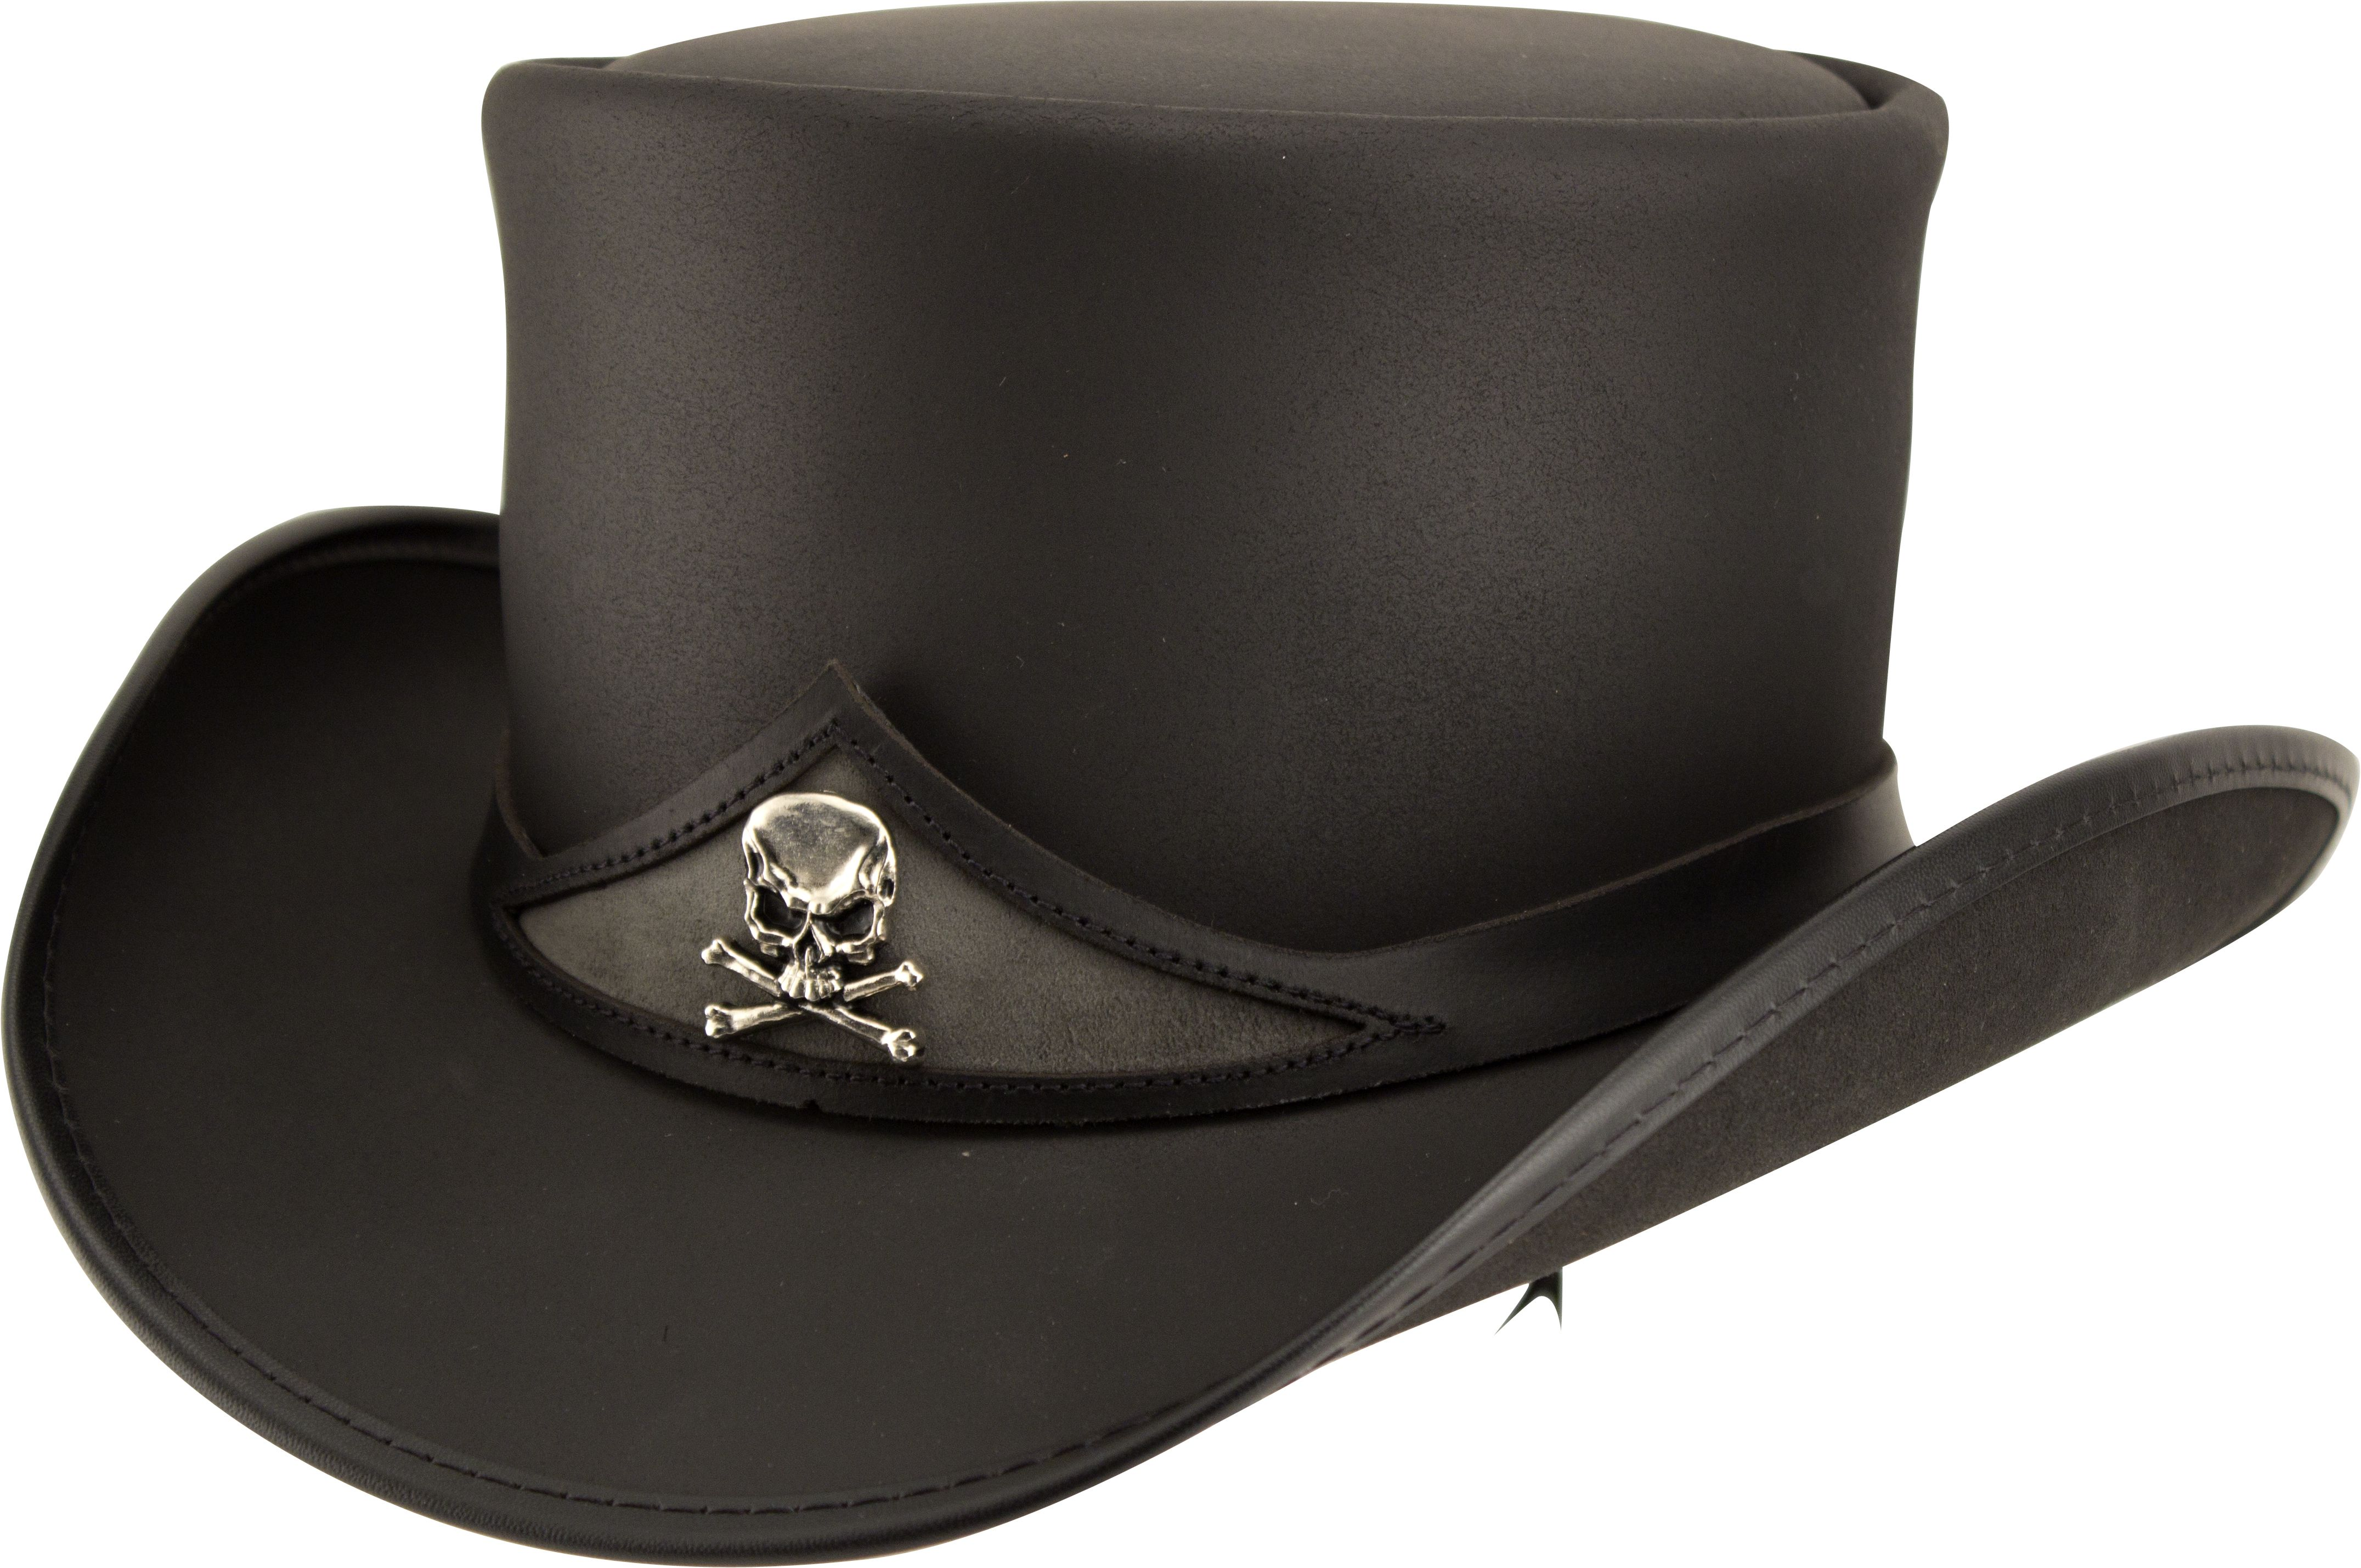 54fba76275c The Pale Rider is sharp and piping with its black finished leather ...